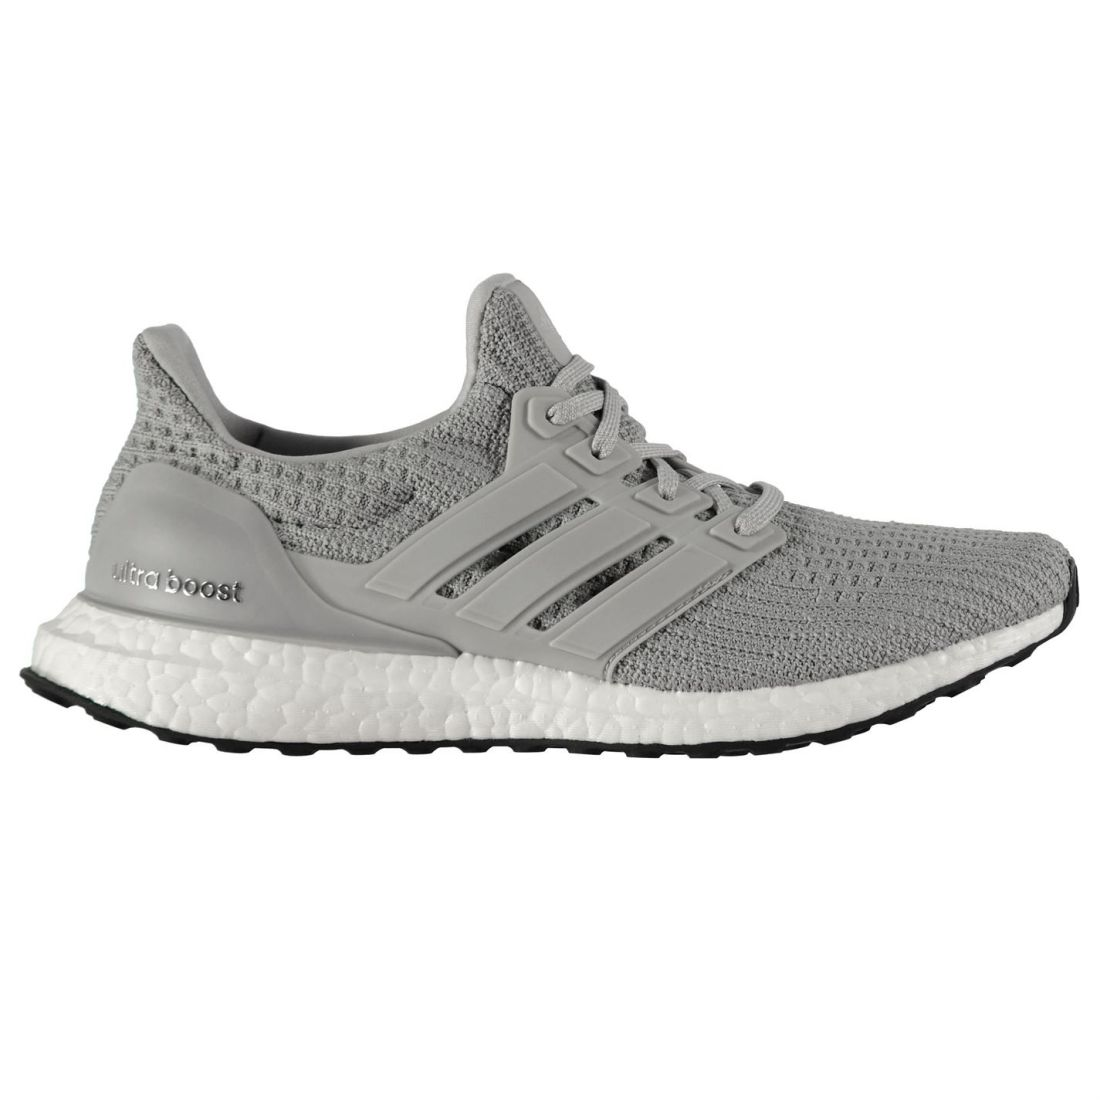 b4e2938e62e4 Image is loading adidas-Mens-UltraBoost-Running-Shoes-Road-Knit-Stretch